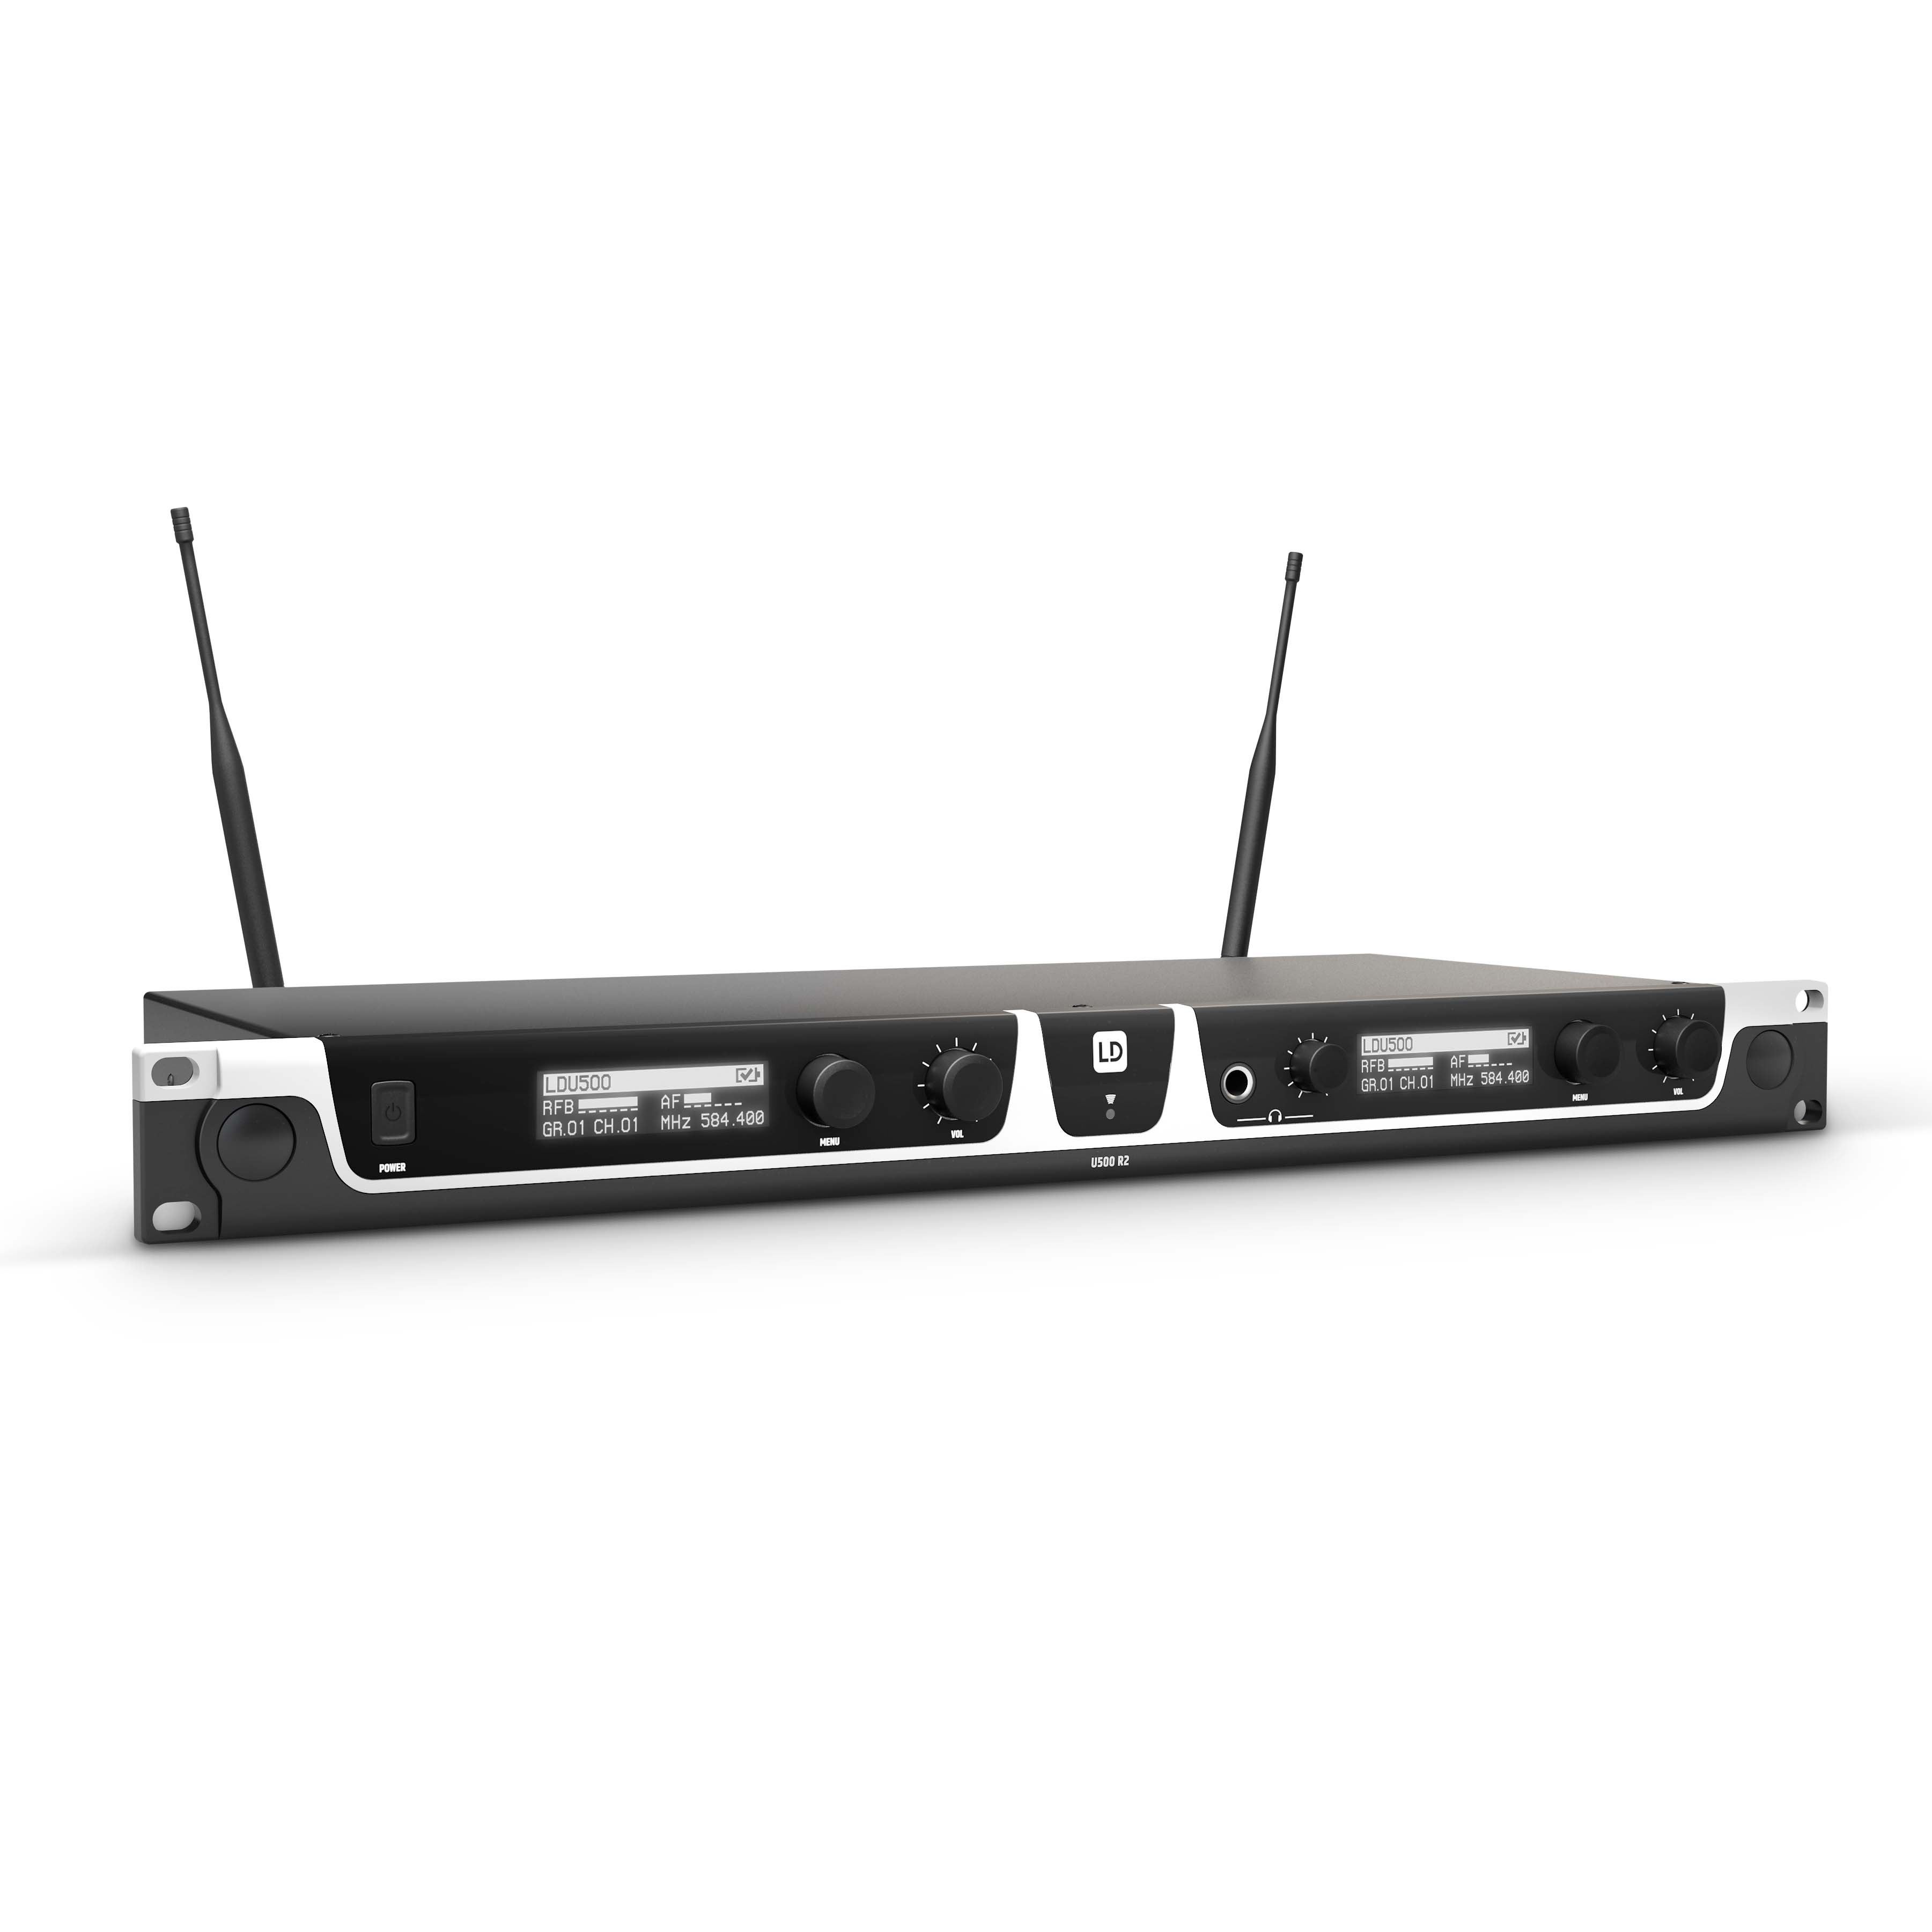 U506 UK BPH 2 Wireless Microphone System with 2 x Bodypack and 2 x Headset